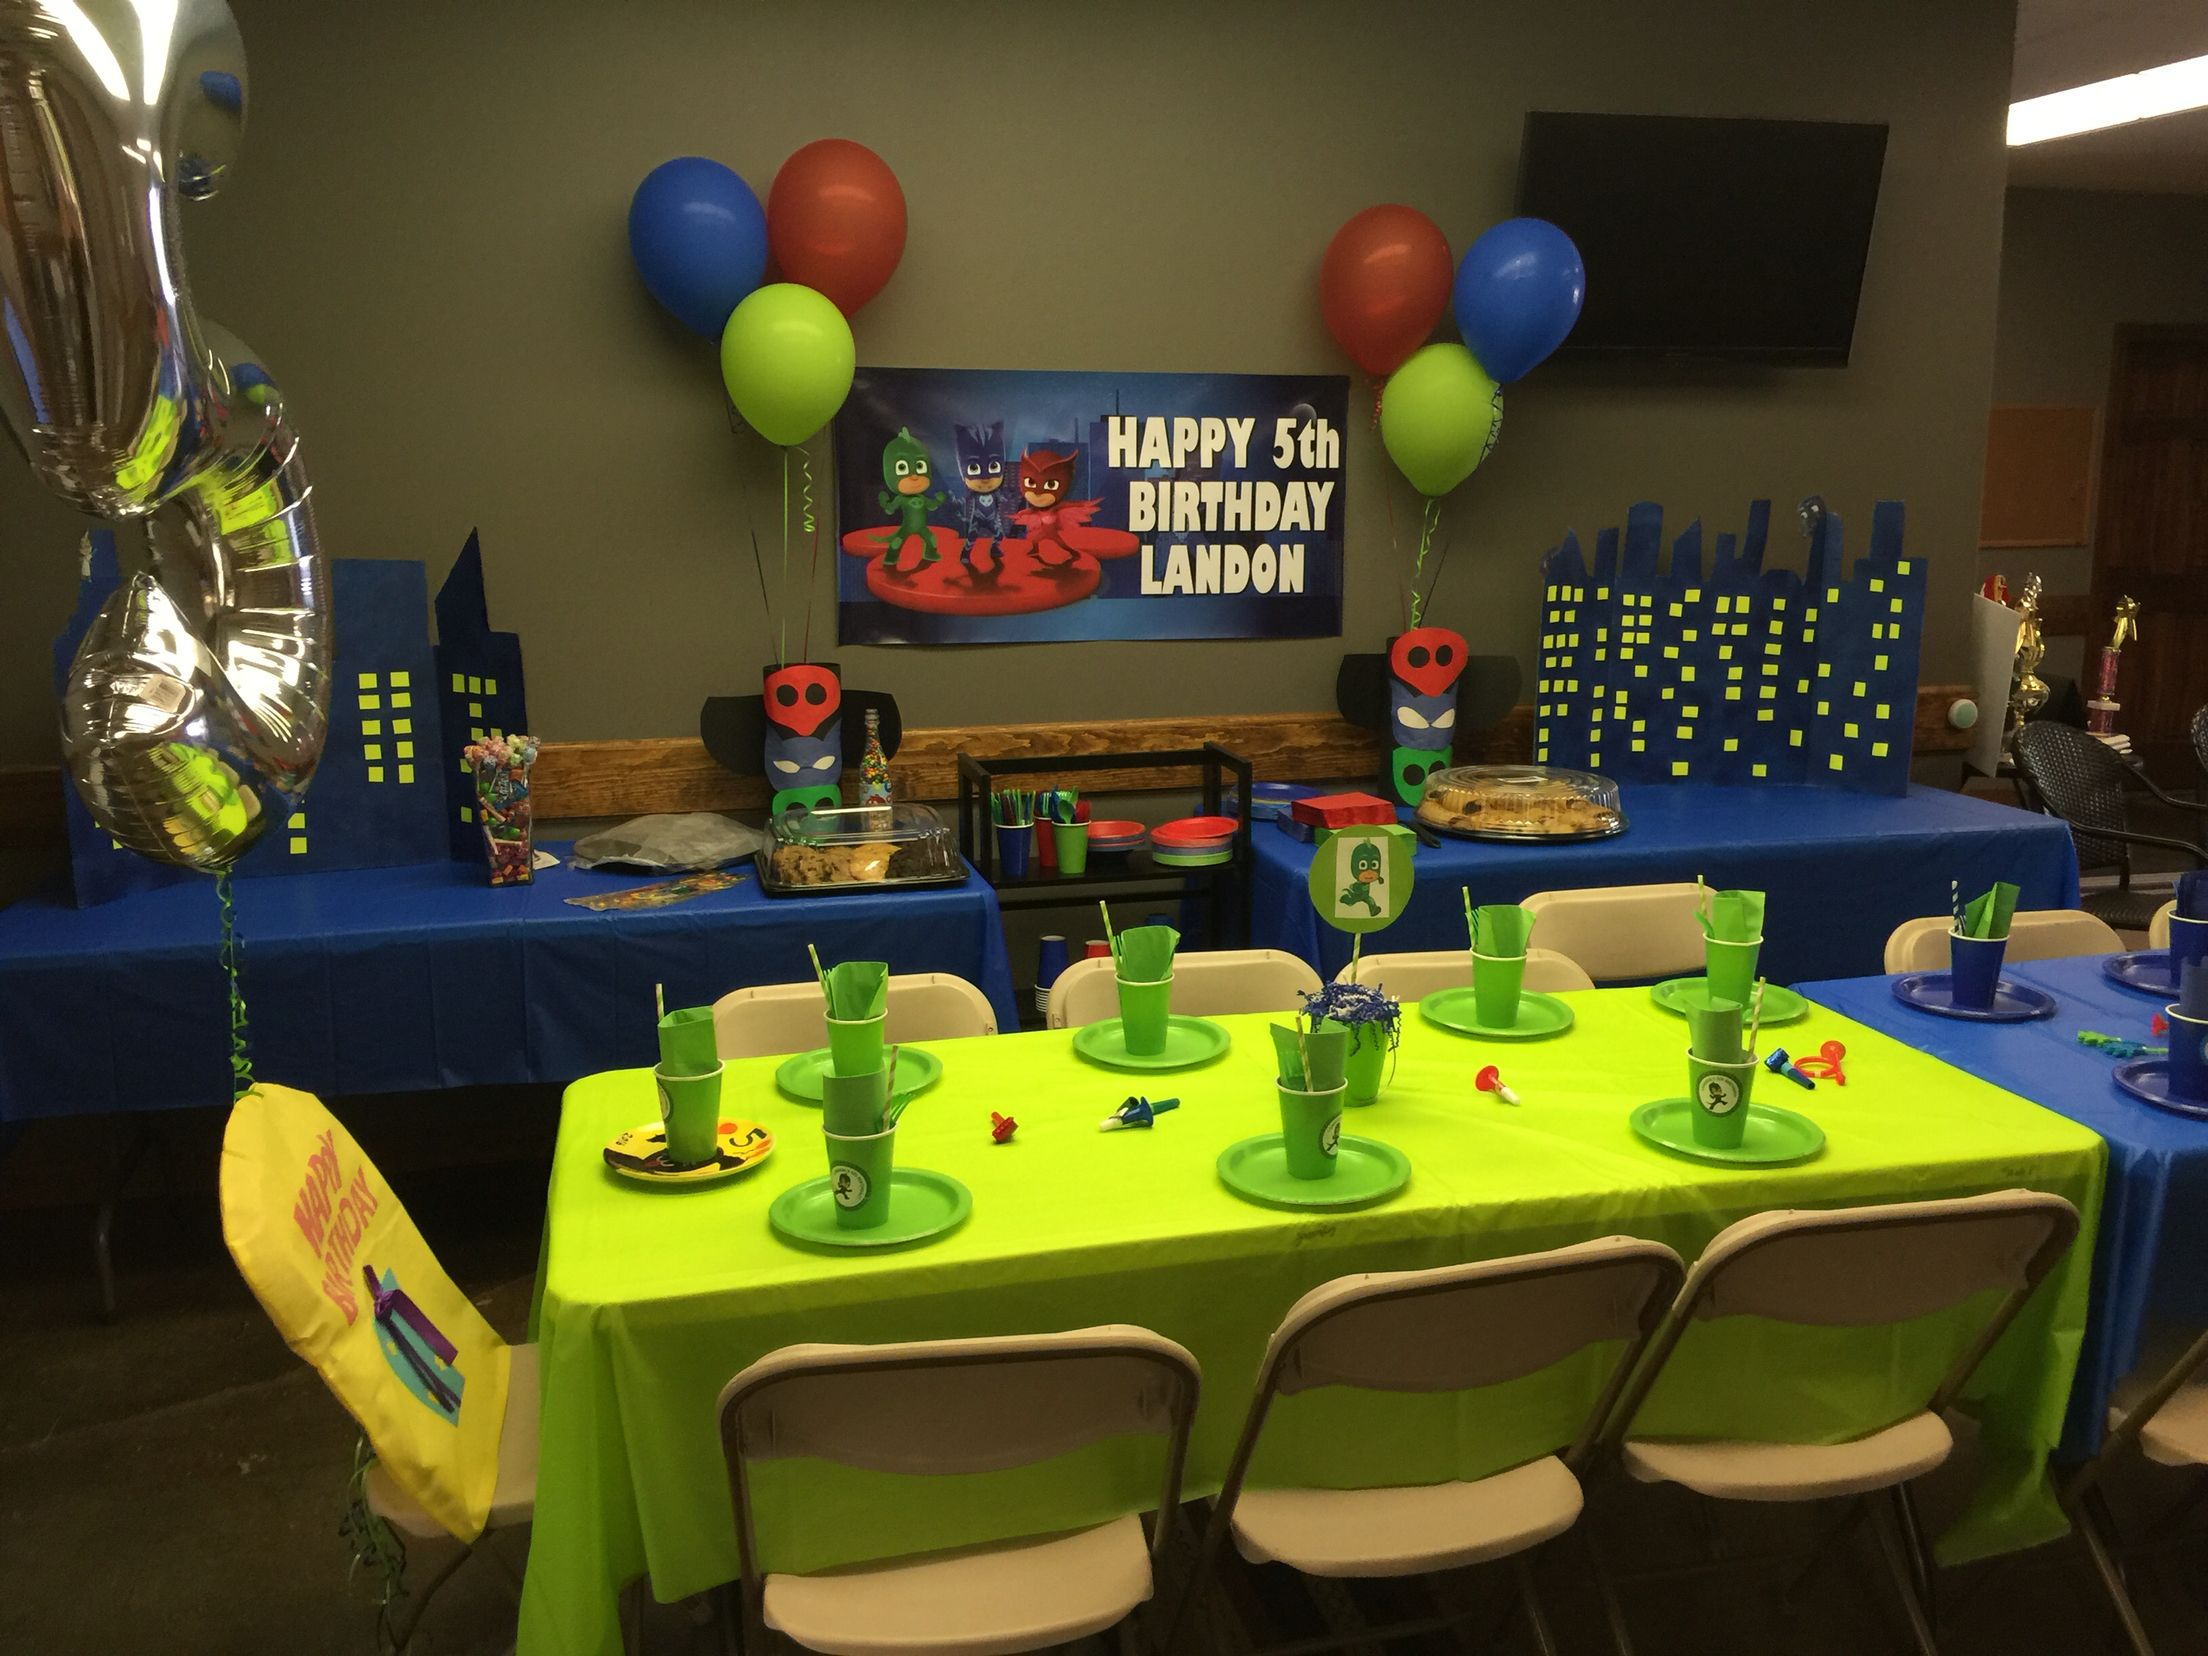 Pj masks homemade decor | Landon PJ masks party | Birthday ...